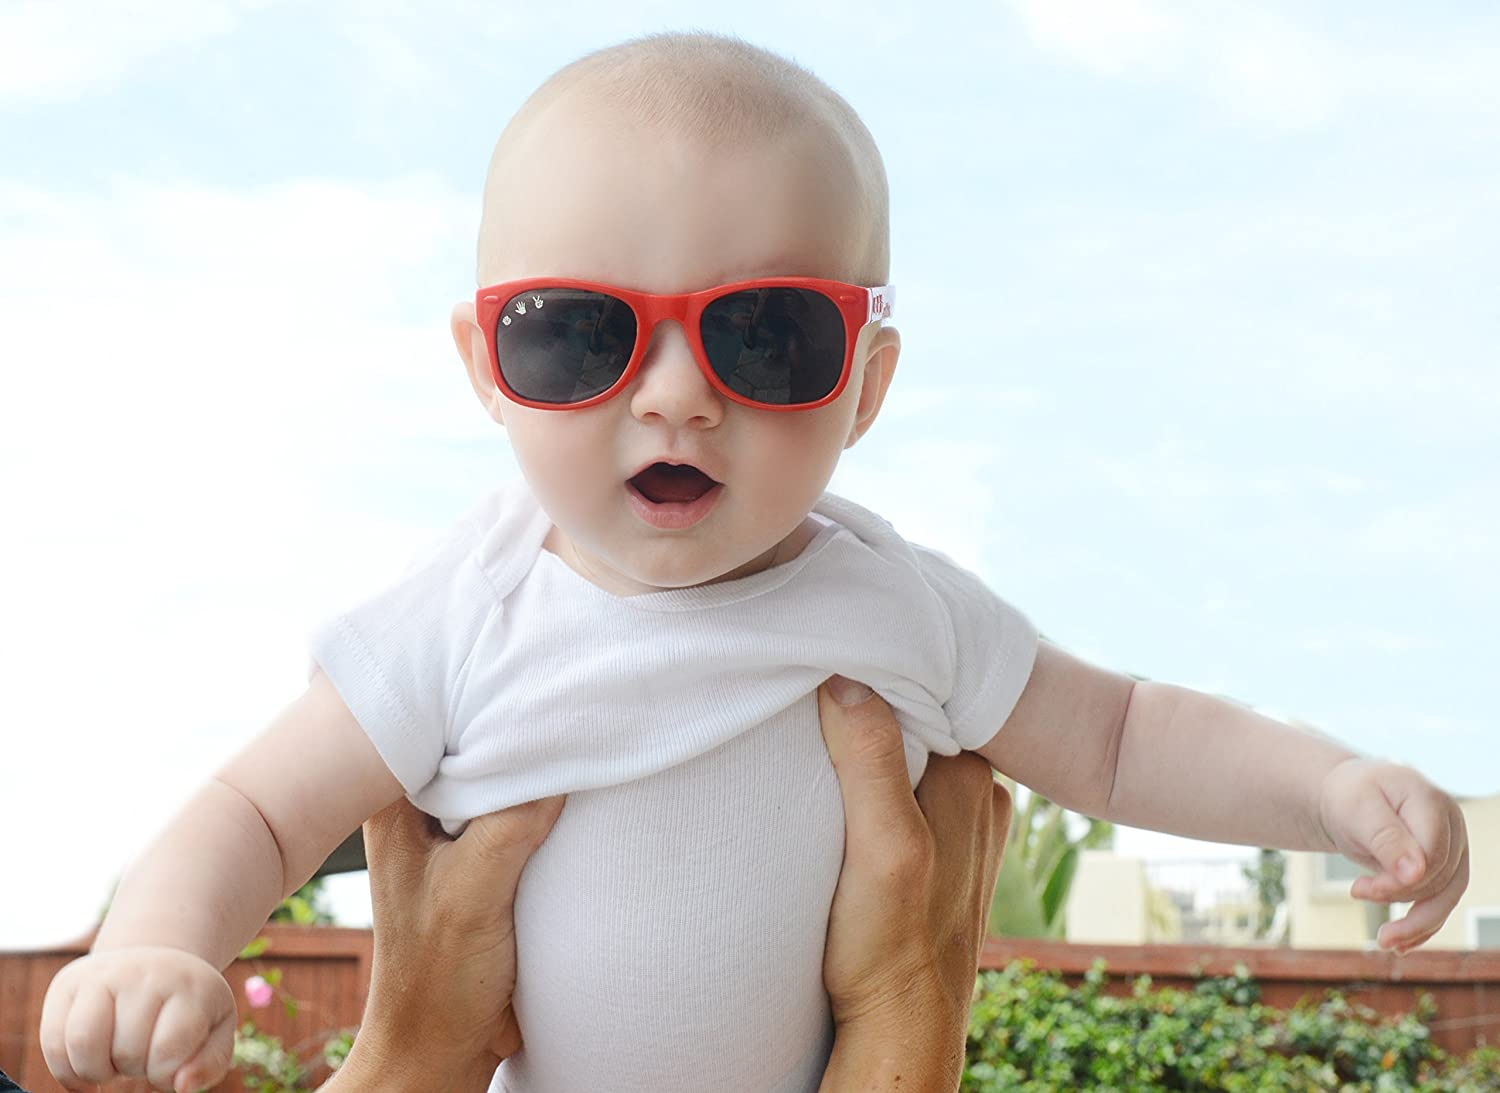 Zack Blue//Green Roshambo Baby Shades Unbreakable Sunglasses 100/% UVA//UVB Protection for Babies 0-18months